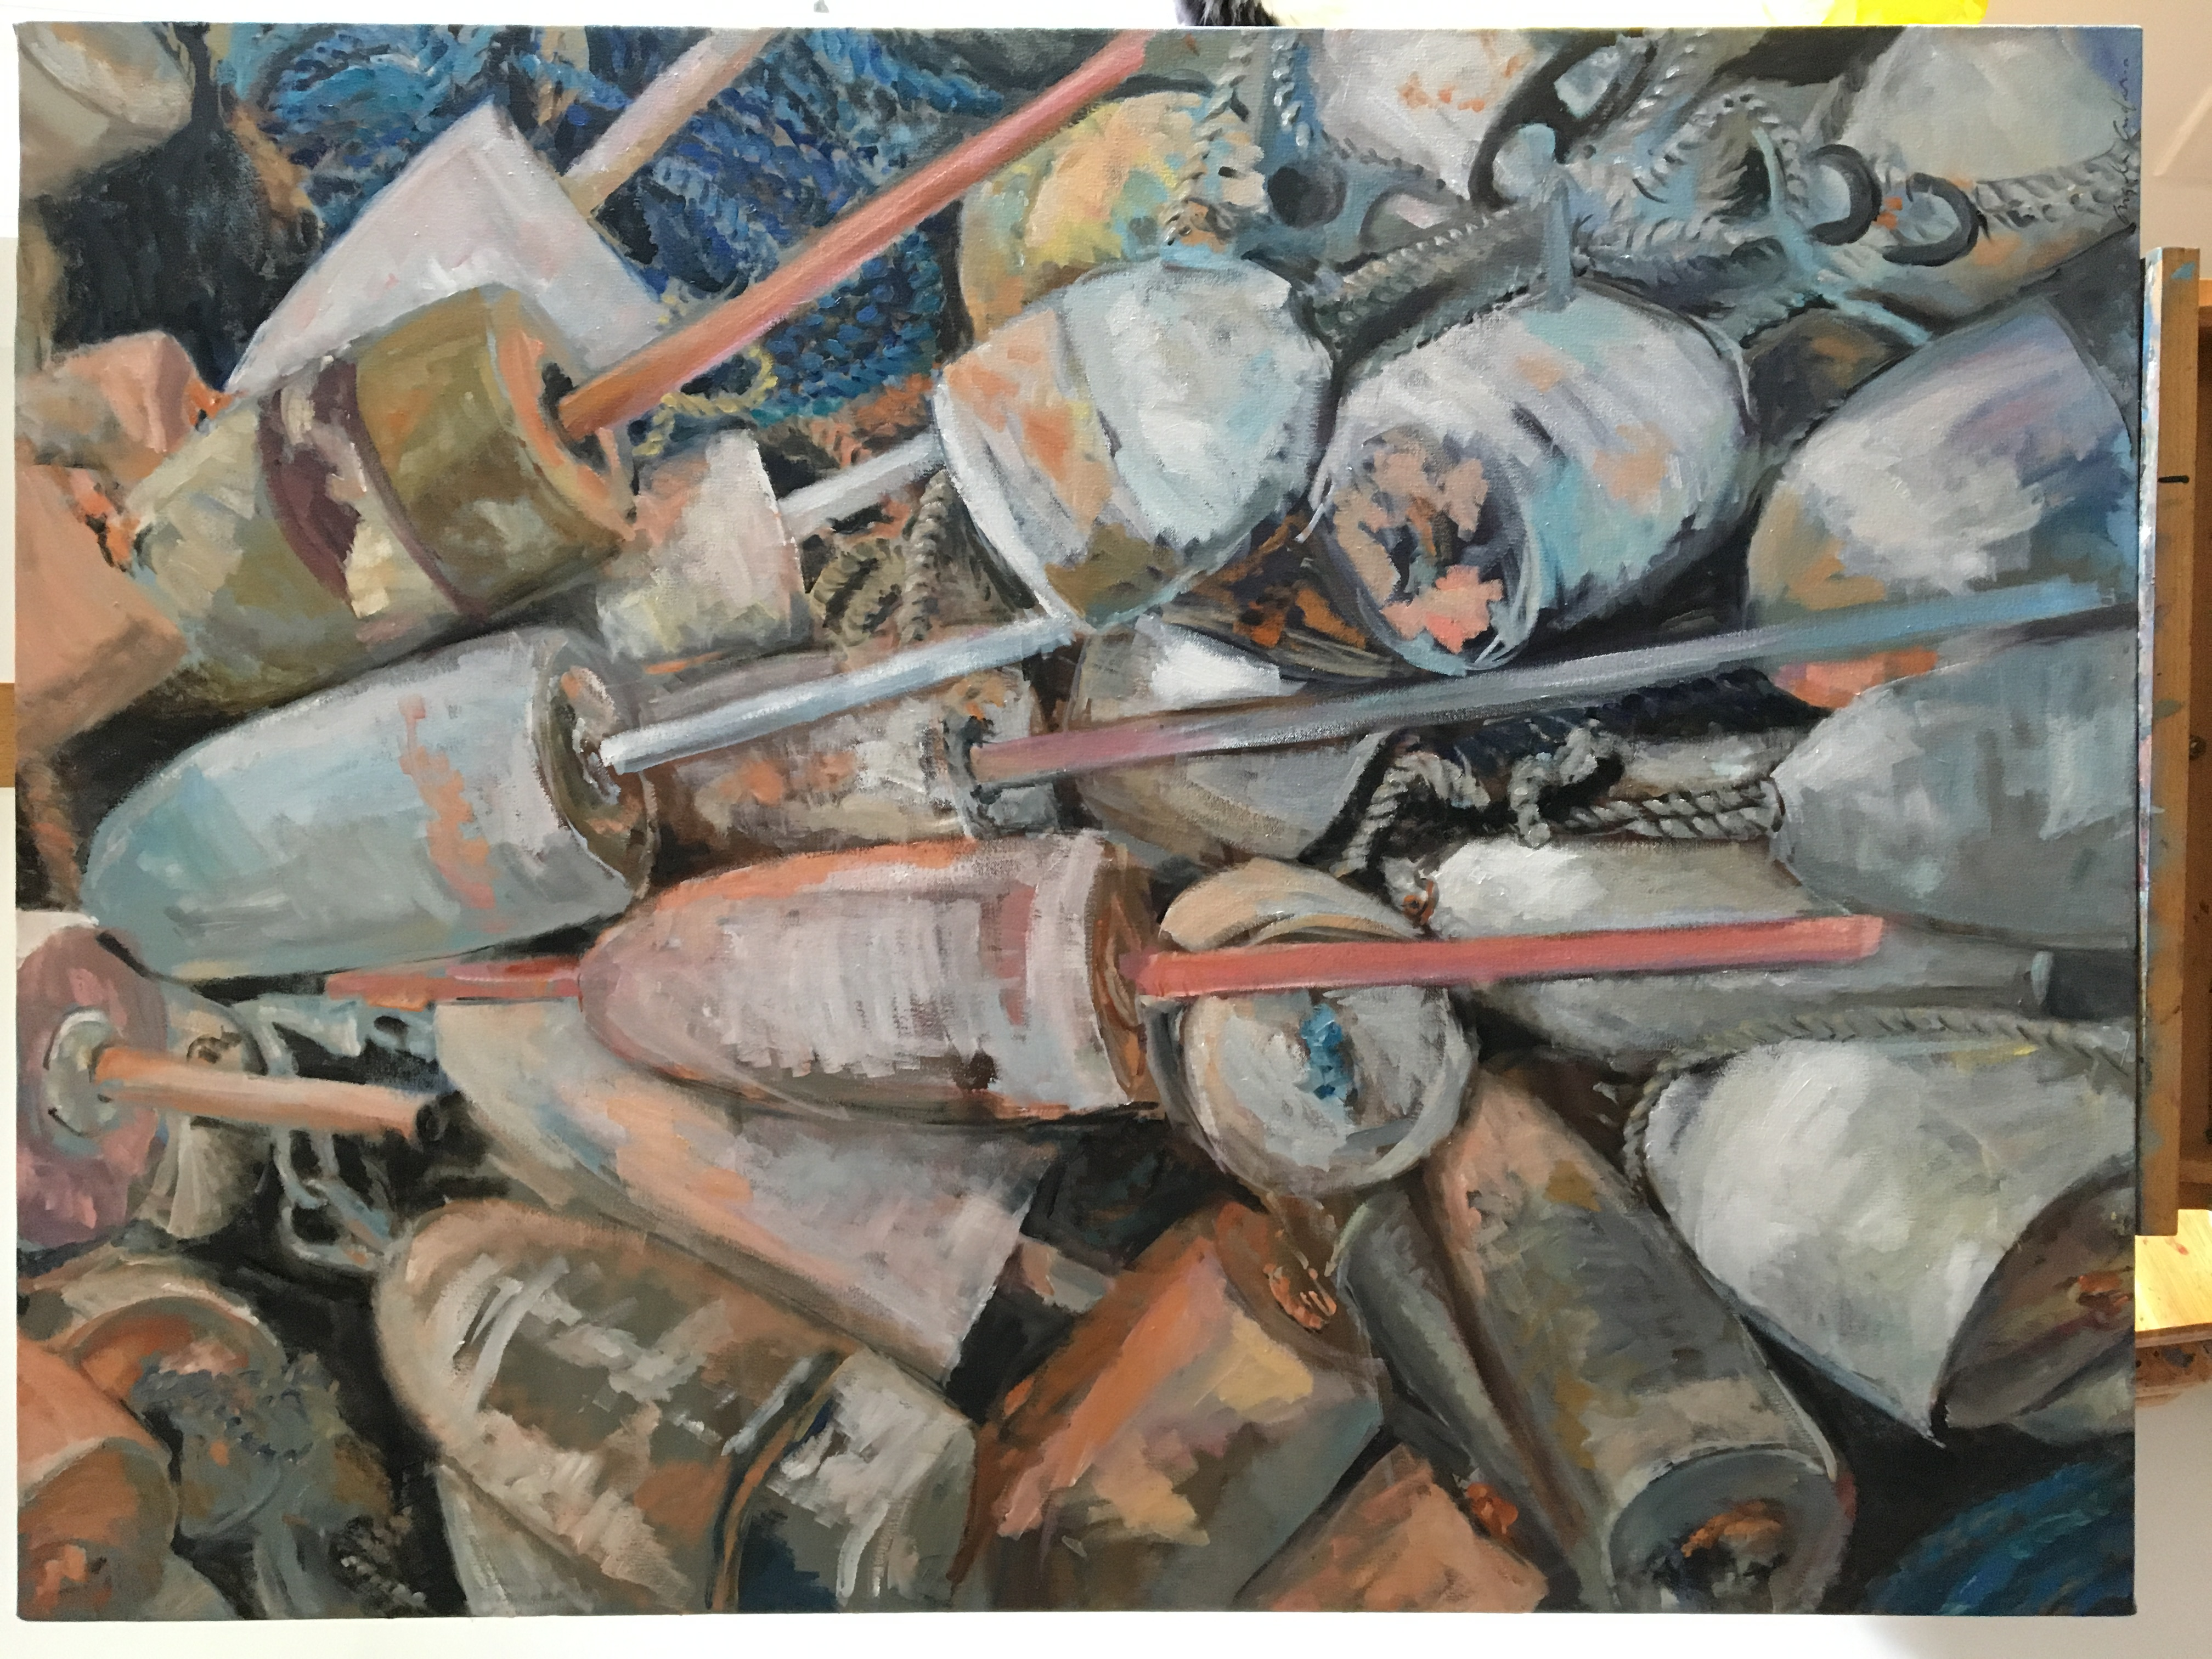 Buoy Pile with Ropes, oil on canvas, 40x30, $800